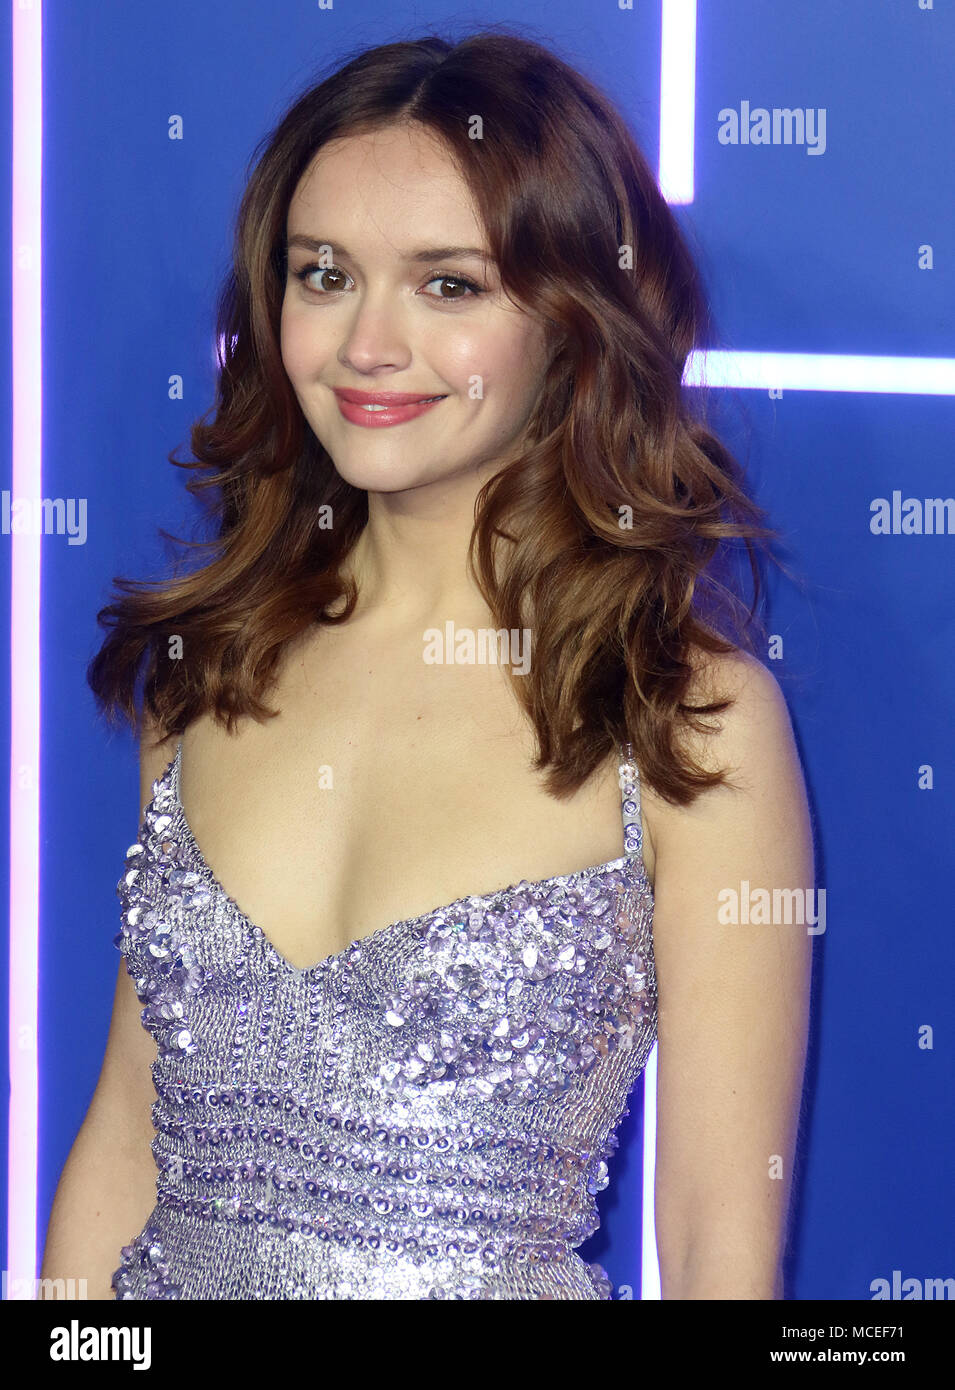 Fotos Olivia Cooke nudes (36 foto and video), Sexy, Paparazzi, Twitter, panties 2017